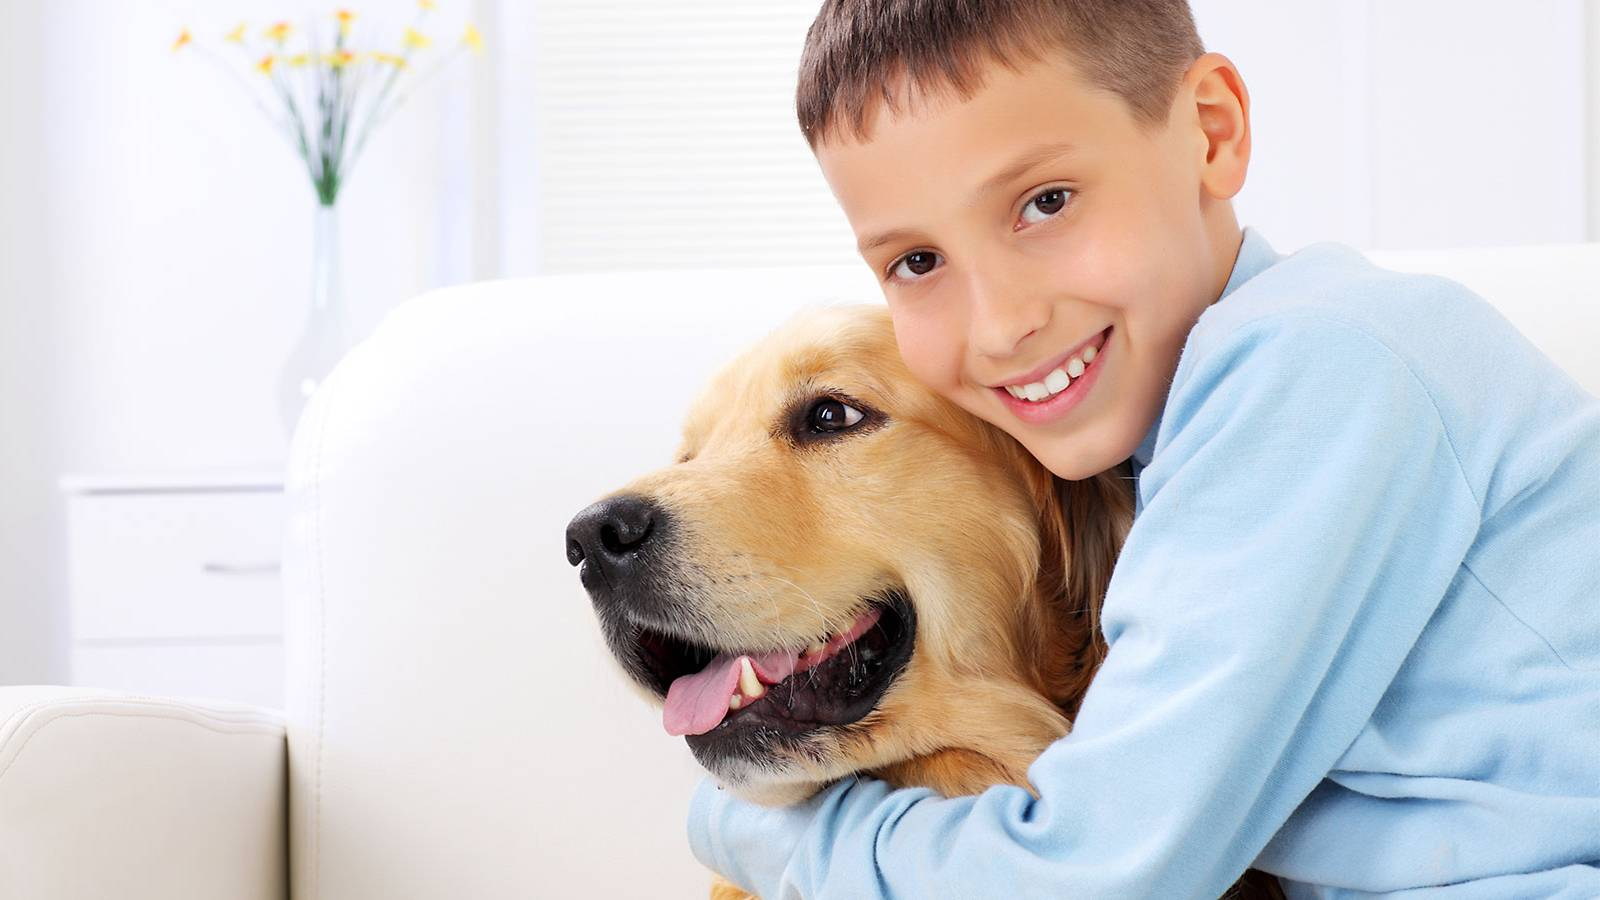 Kids-MUM-SAYS-Animal-therapy-boosted-my-withdrawn-child's-self-esteem-MAIN